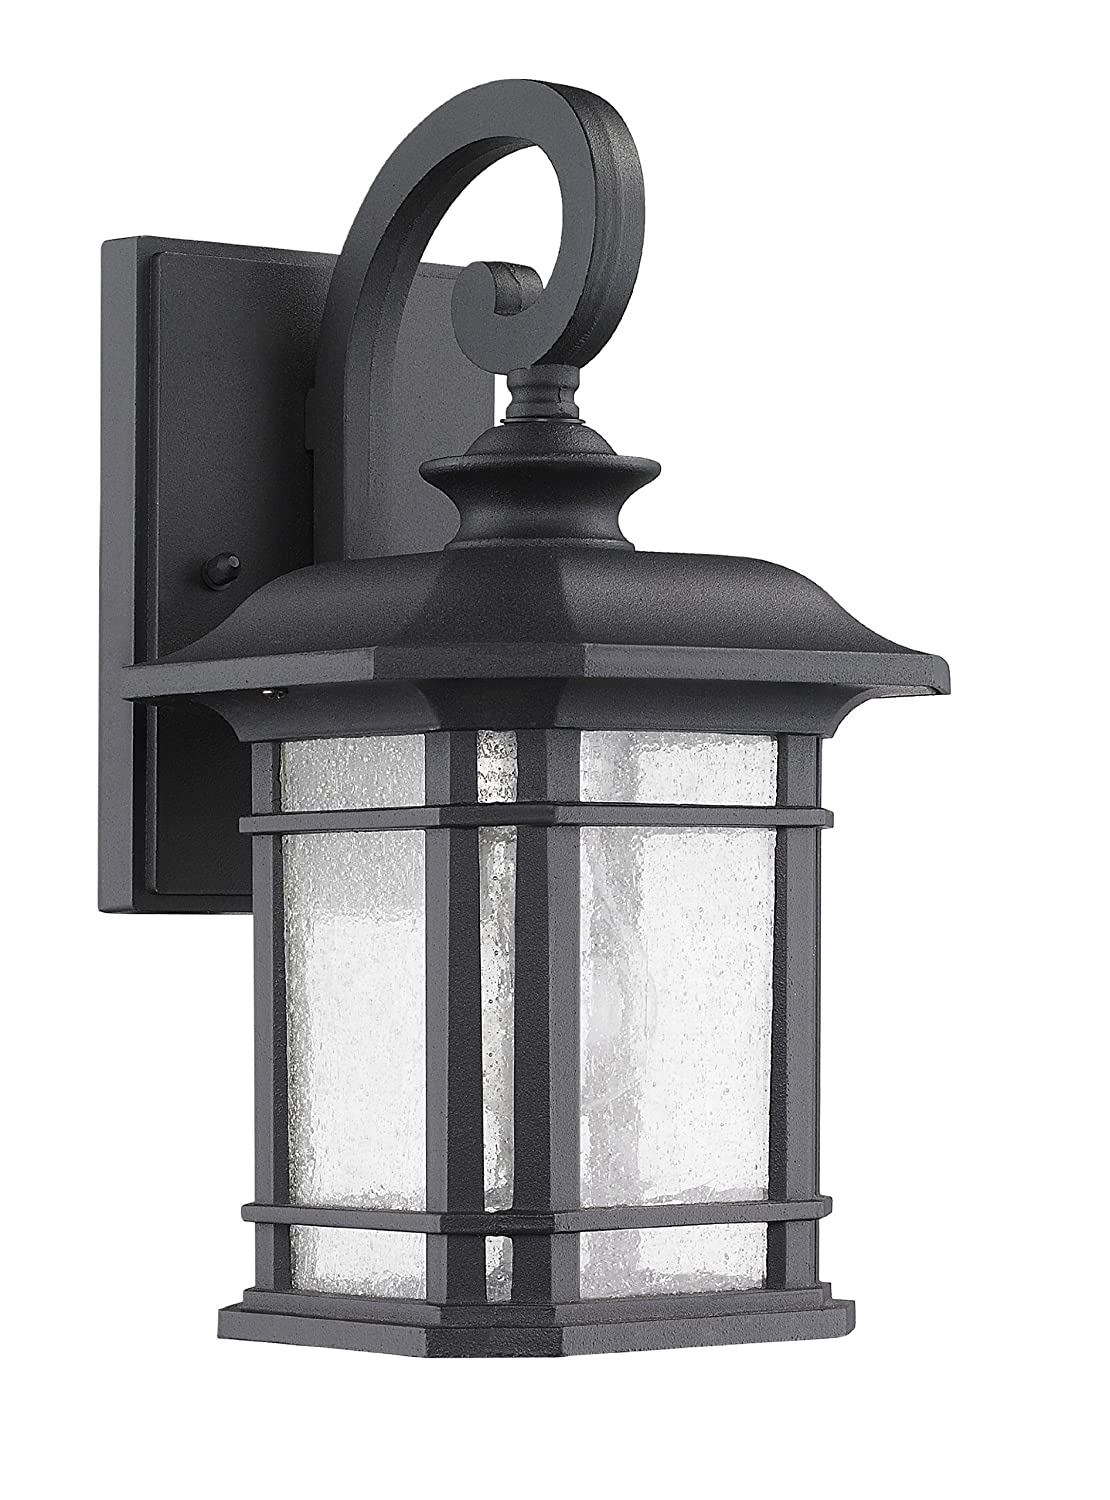 Chloe lighting ch22021bk13 od1 franklin transitional 1 light black chloe lighting ch22021bk13 od1 franklin transitional 1 light black outdoor wall sconce 1275 height wall porch lights amazon aloadofball Choice Image